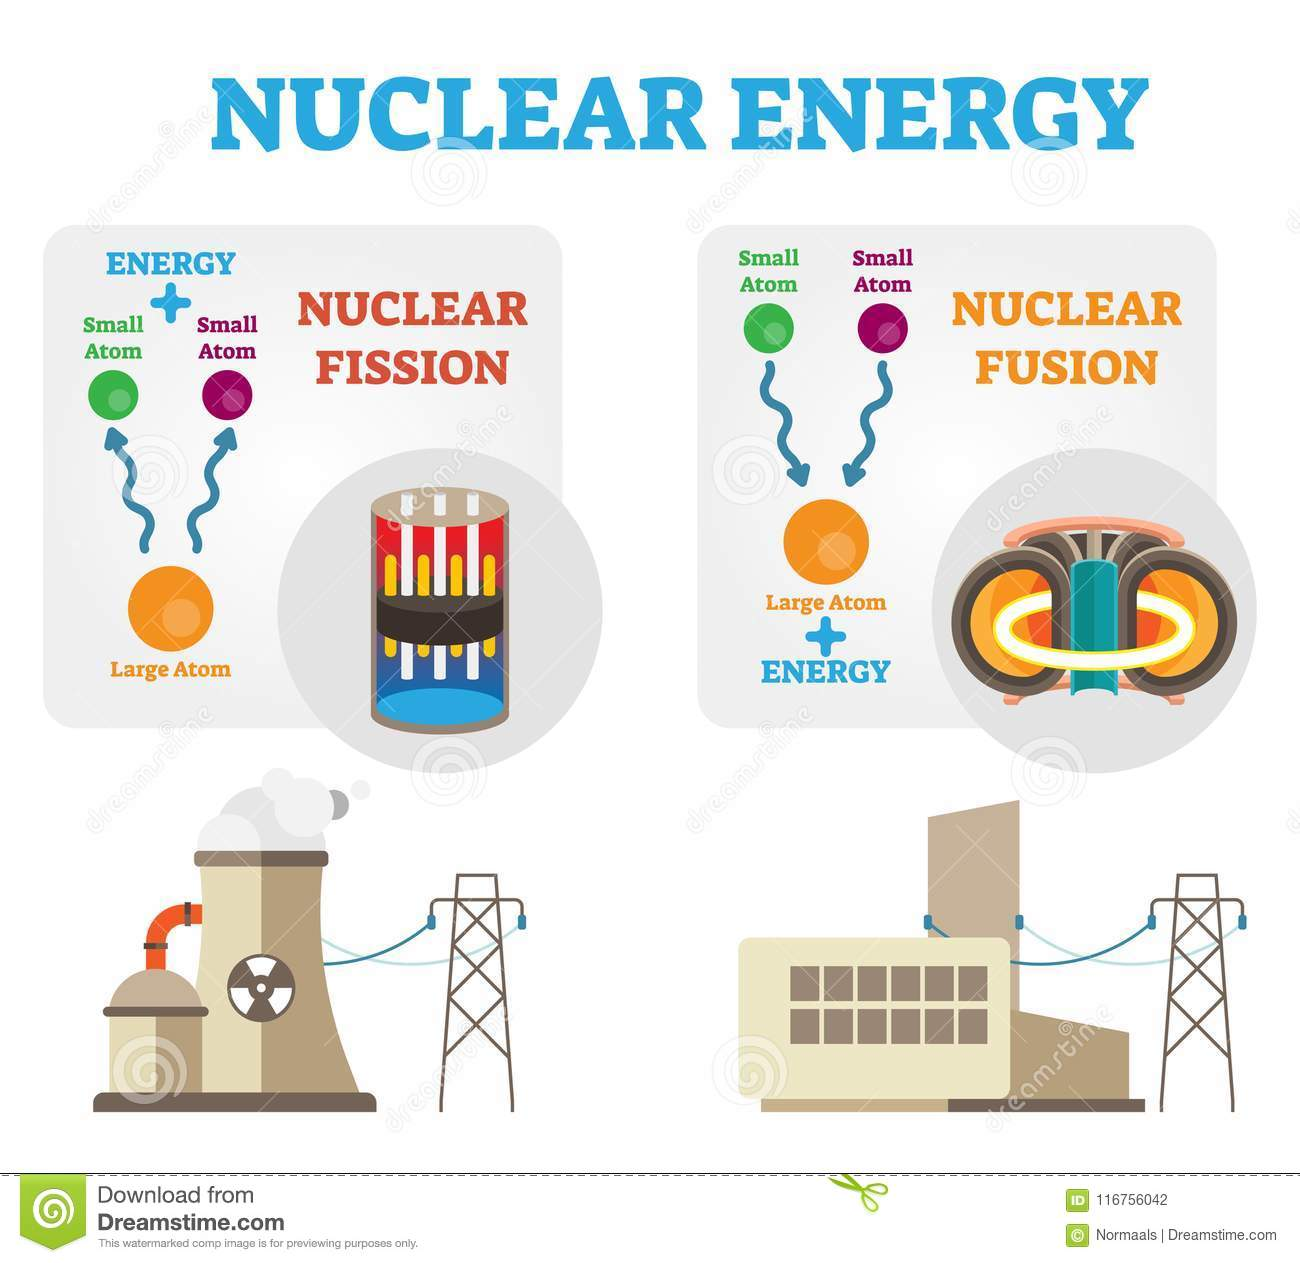 hight resolution of nuclear energy fission and fusion concept diagram flat vector illustration